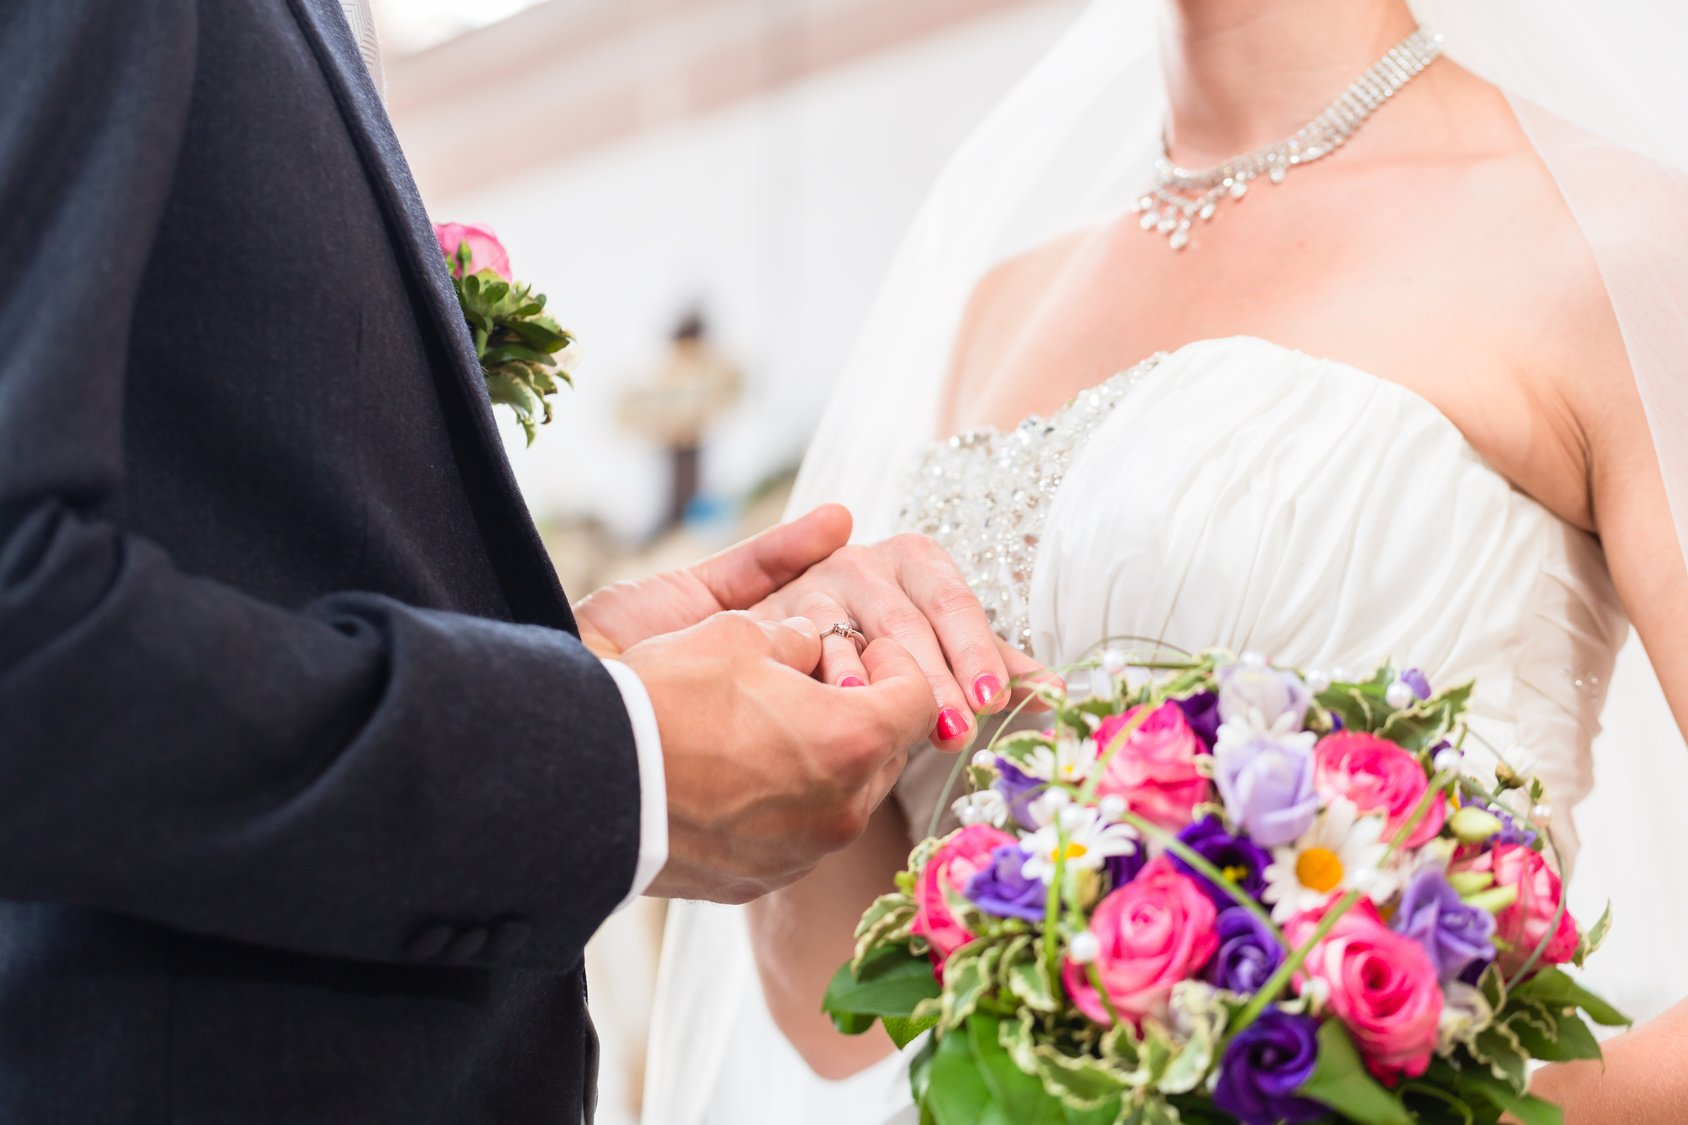 10 Top Tips for Renewal of Vows